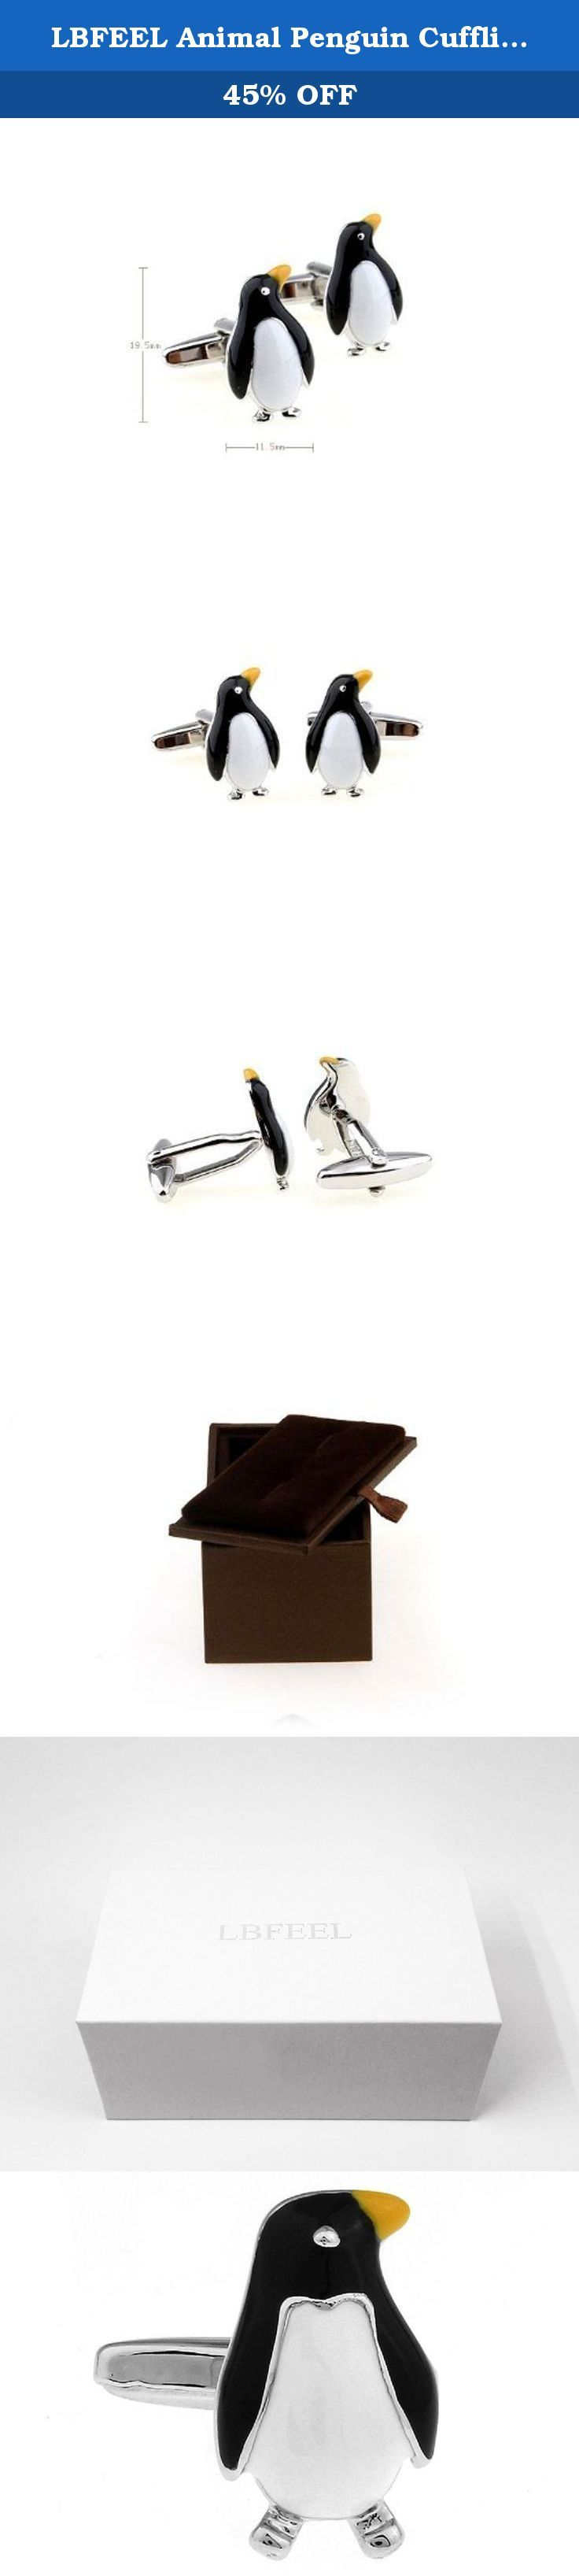 LBFEEL Animal Penguin Cufflinks for Men with a Gift Box. These cufflinks are trendy and gives a fun look. Raise your own game with these amazing accessories.